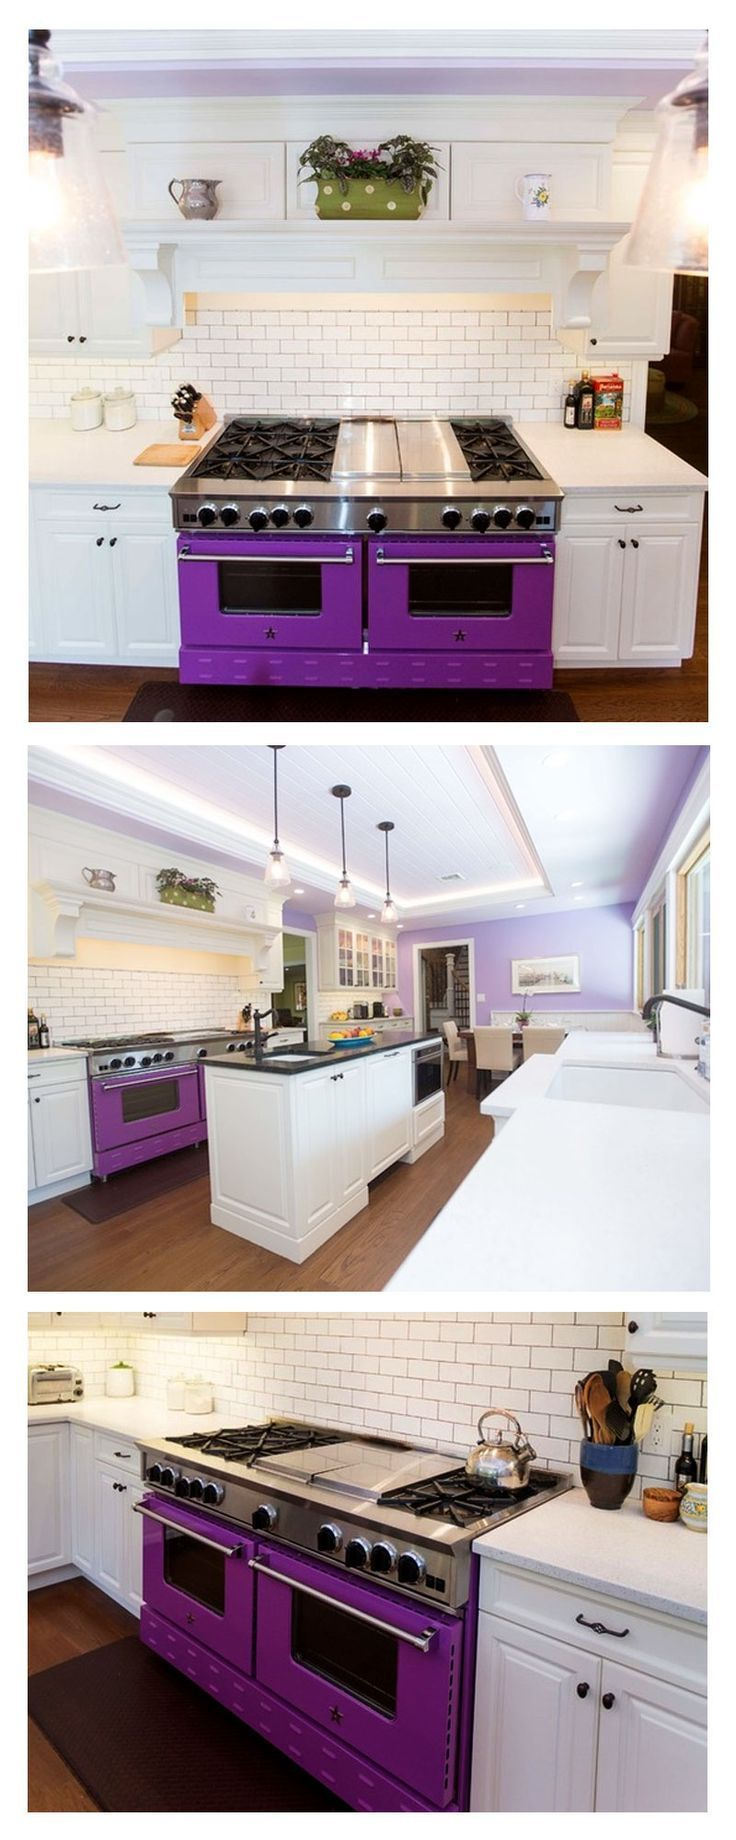 Create A Unique Kitchen Style With Over 750 Colors, 10 Metal Trims, And  Nearly Part 34